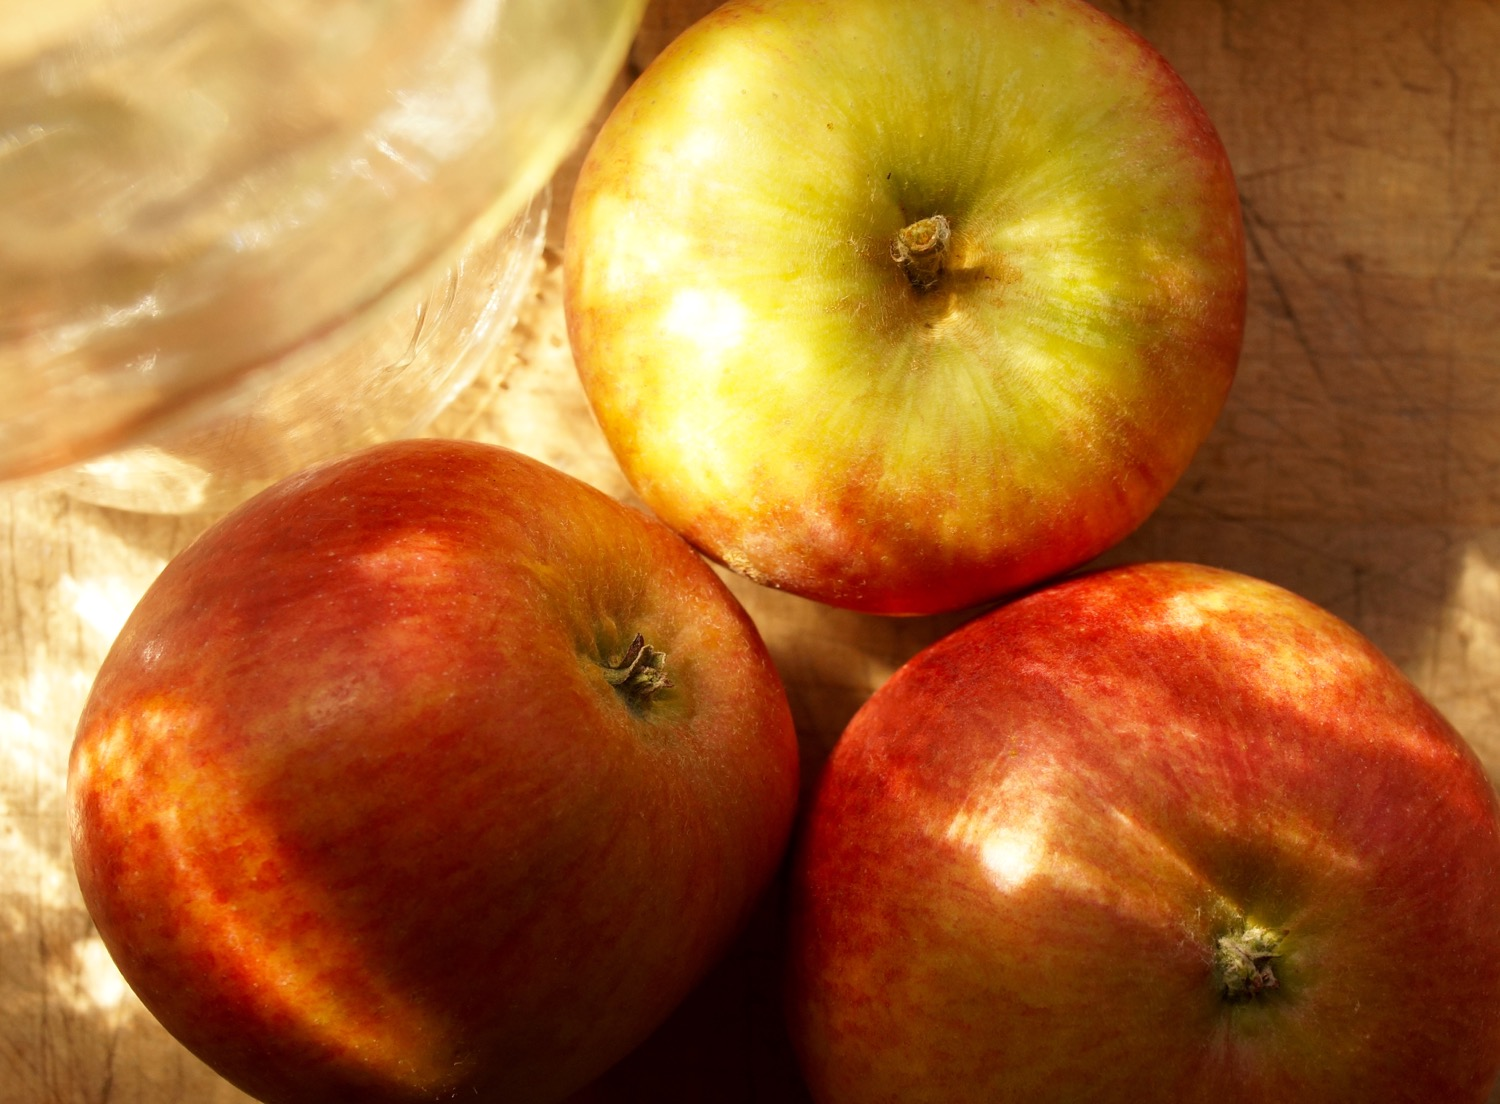 An old early apple variety known as Mother